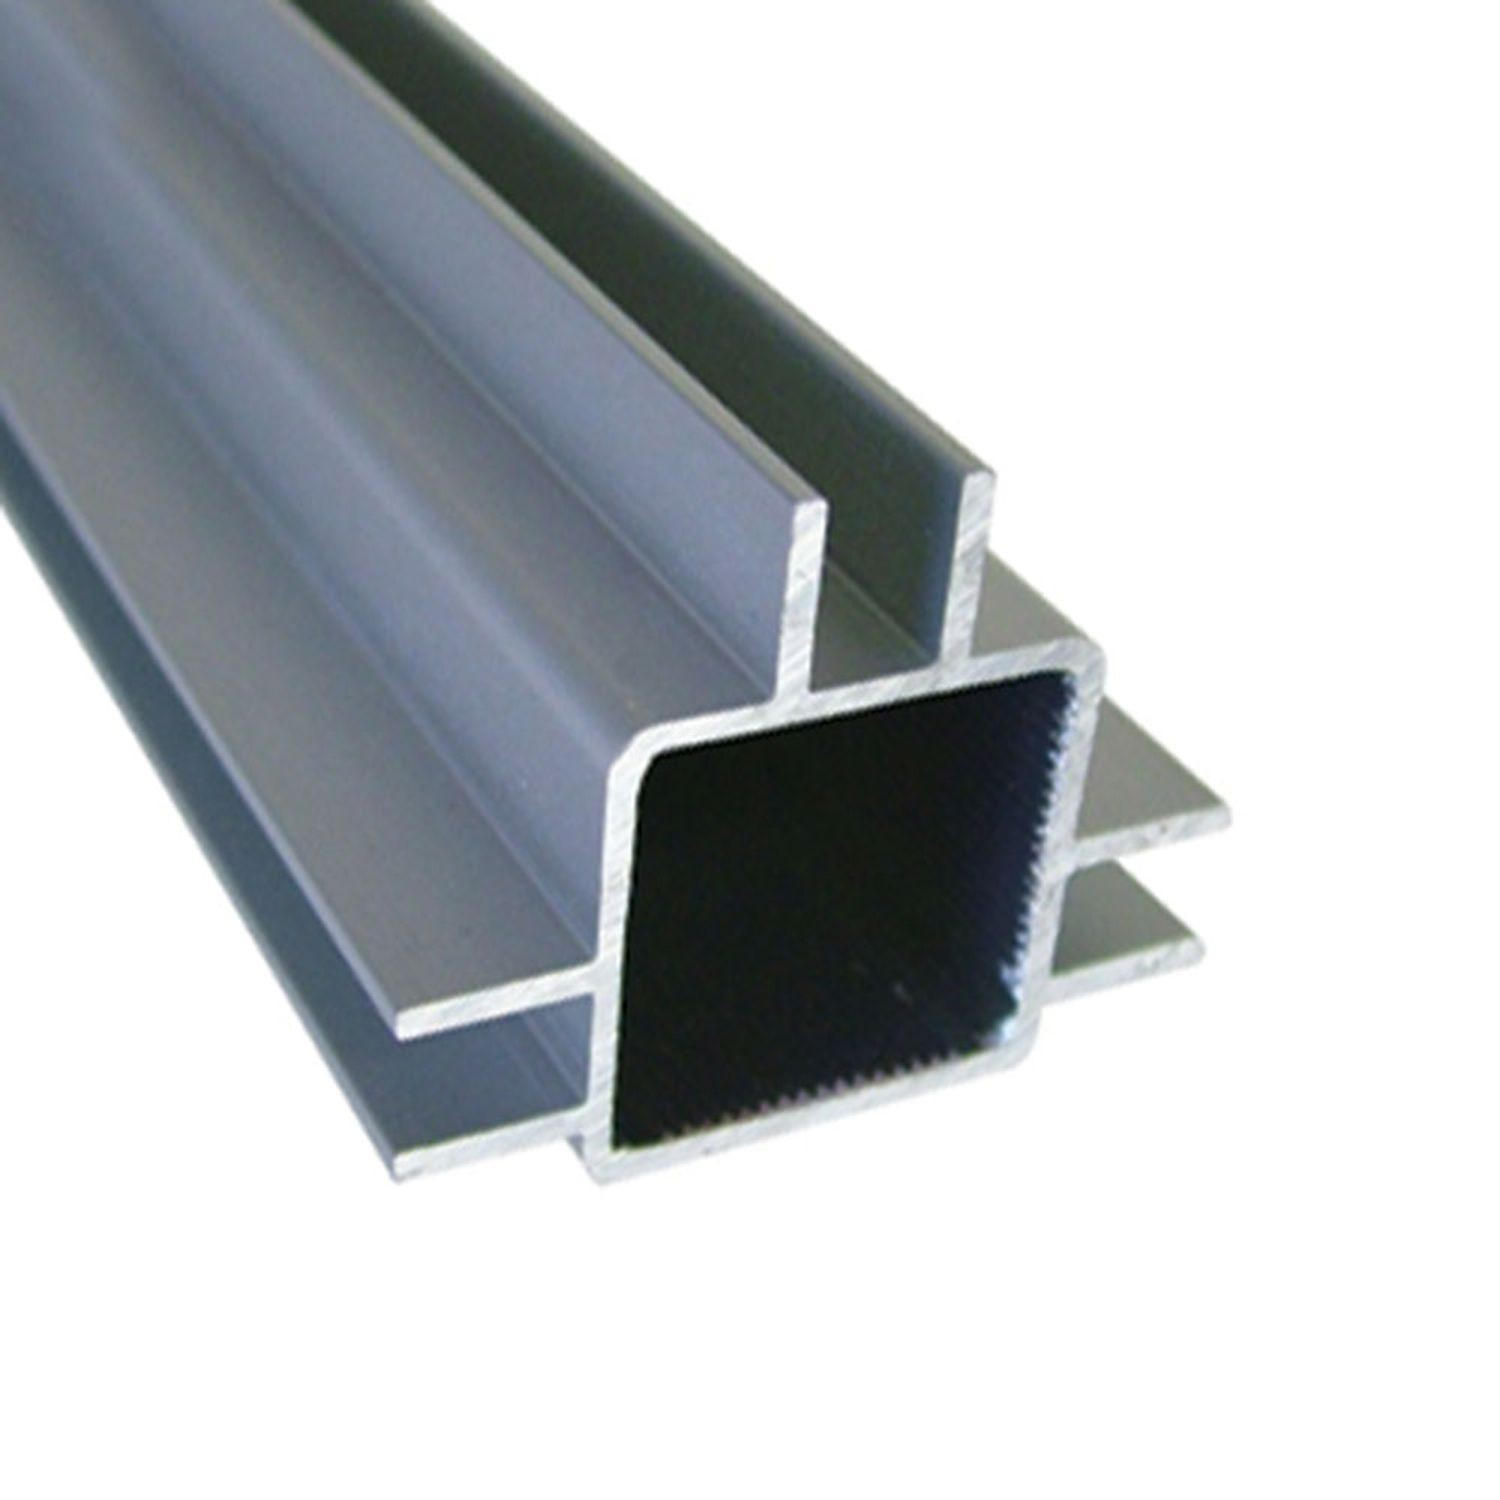 "1"" Square Flange Clear Anodized Triple Channel for 1/4"" Panel Aluminum Tubing 8' Length"